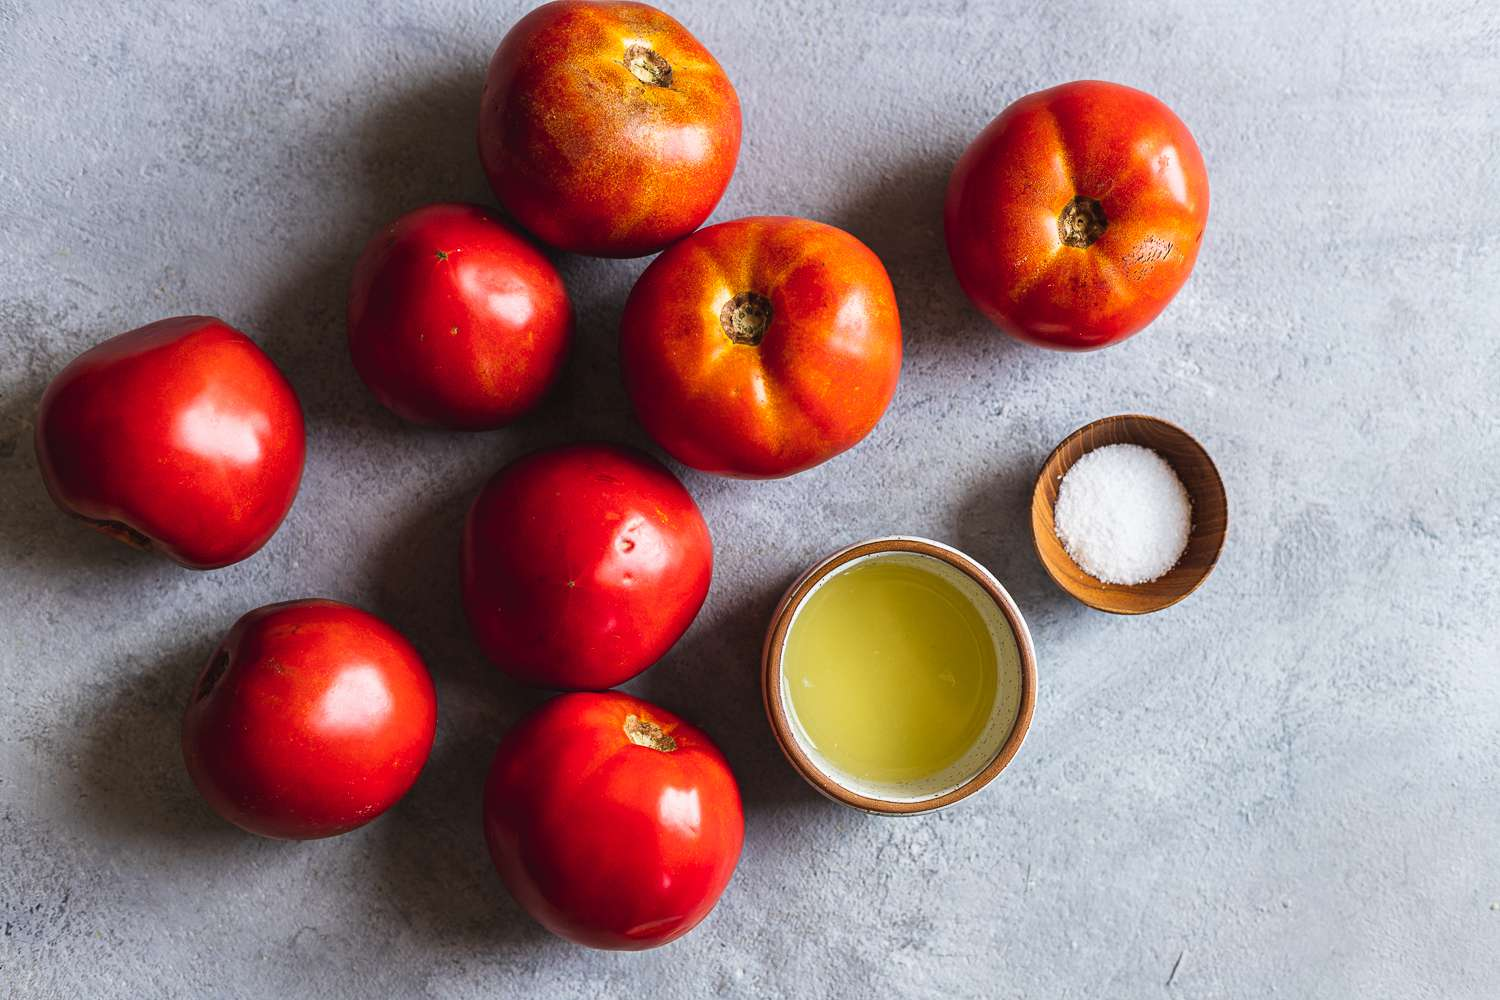 Ingredients for making tomato sauce